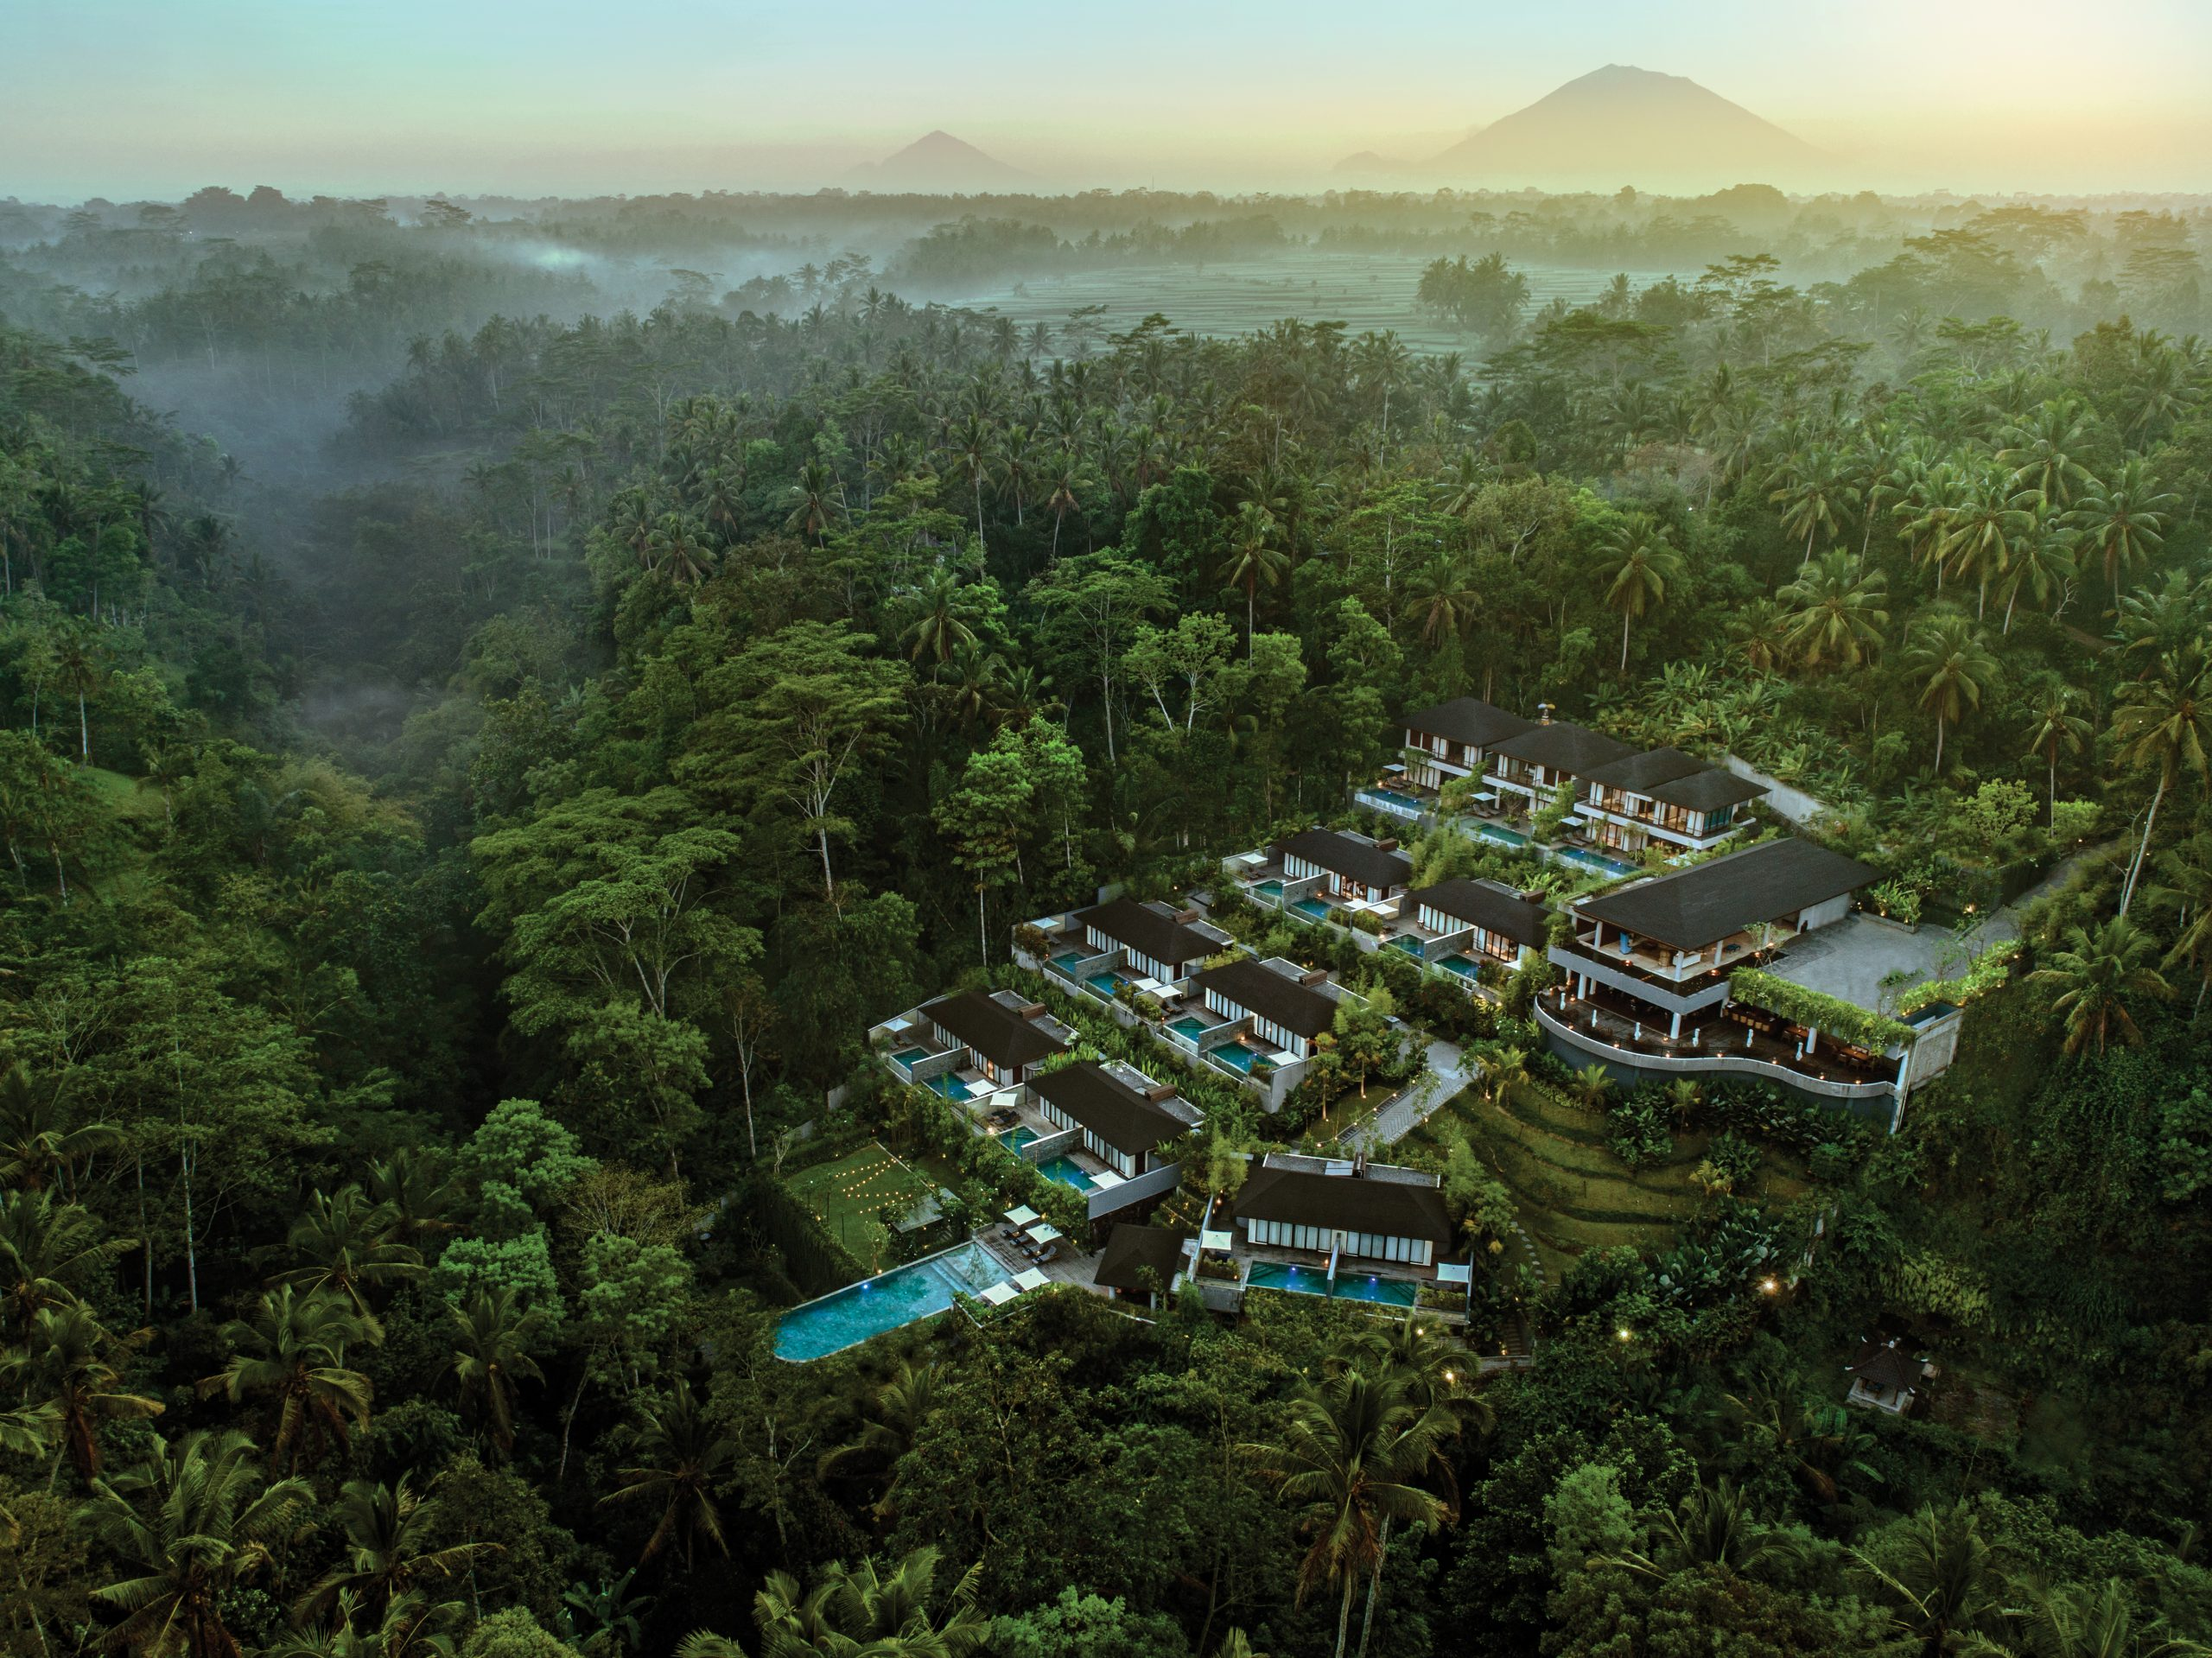 https://highend-traveller.com/healing-at-your-leisure-package-for-clarity-within-yourself-at-samsara-ubud-reset-reflect-and-reconnect/